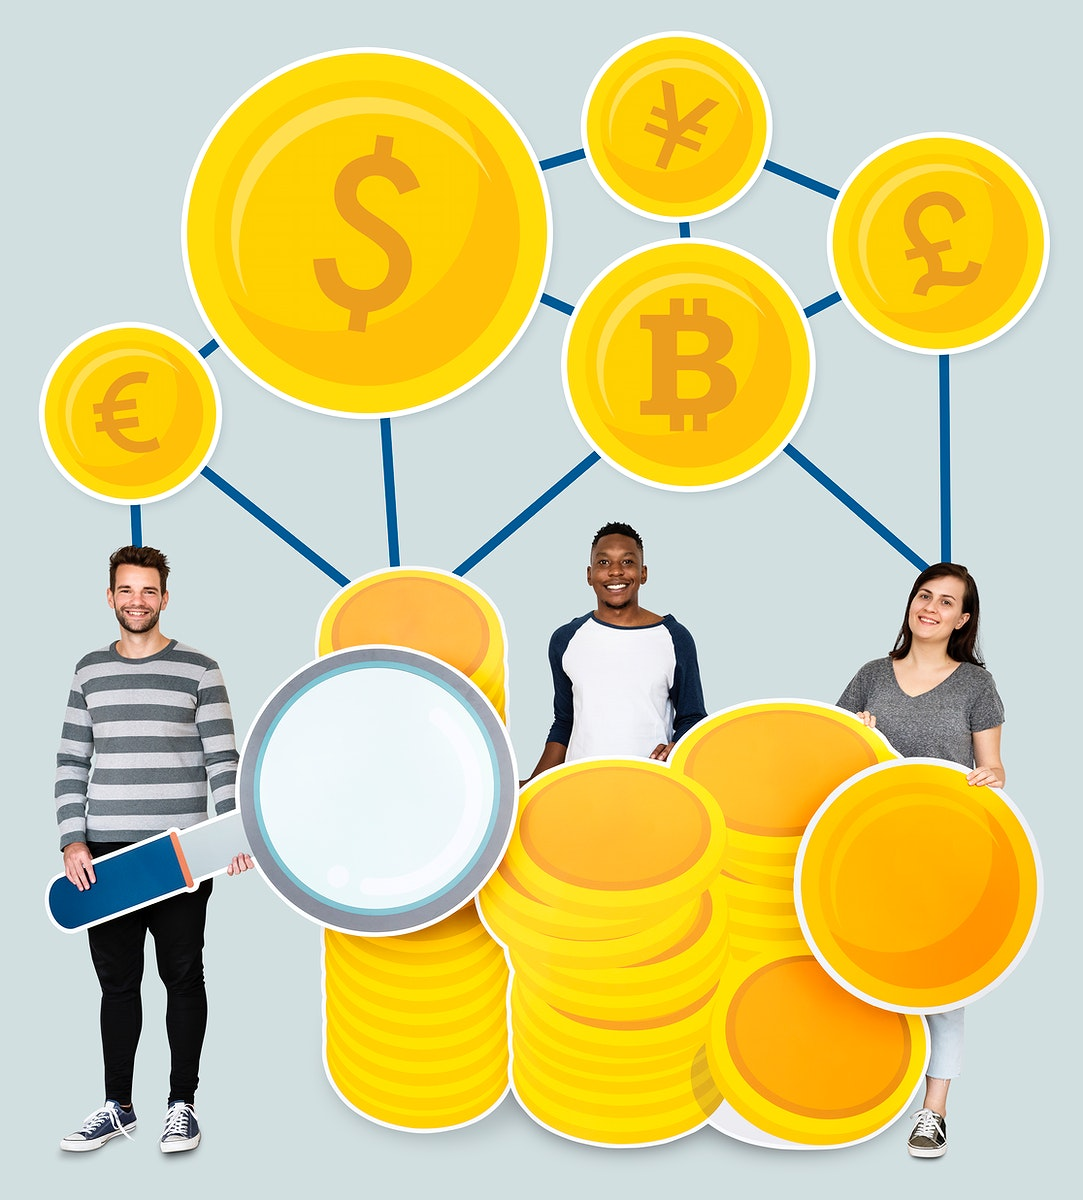 People with coin currency cardboard cutouts